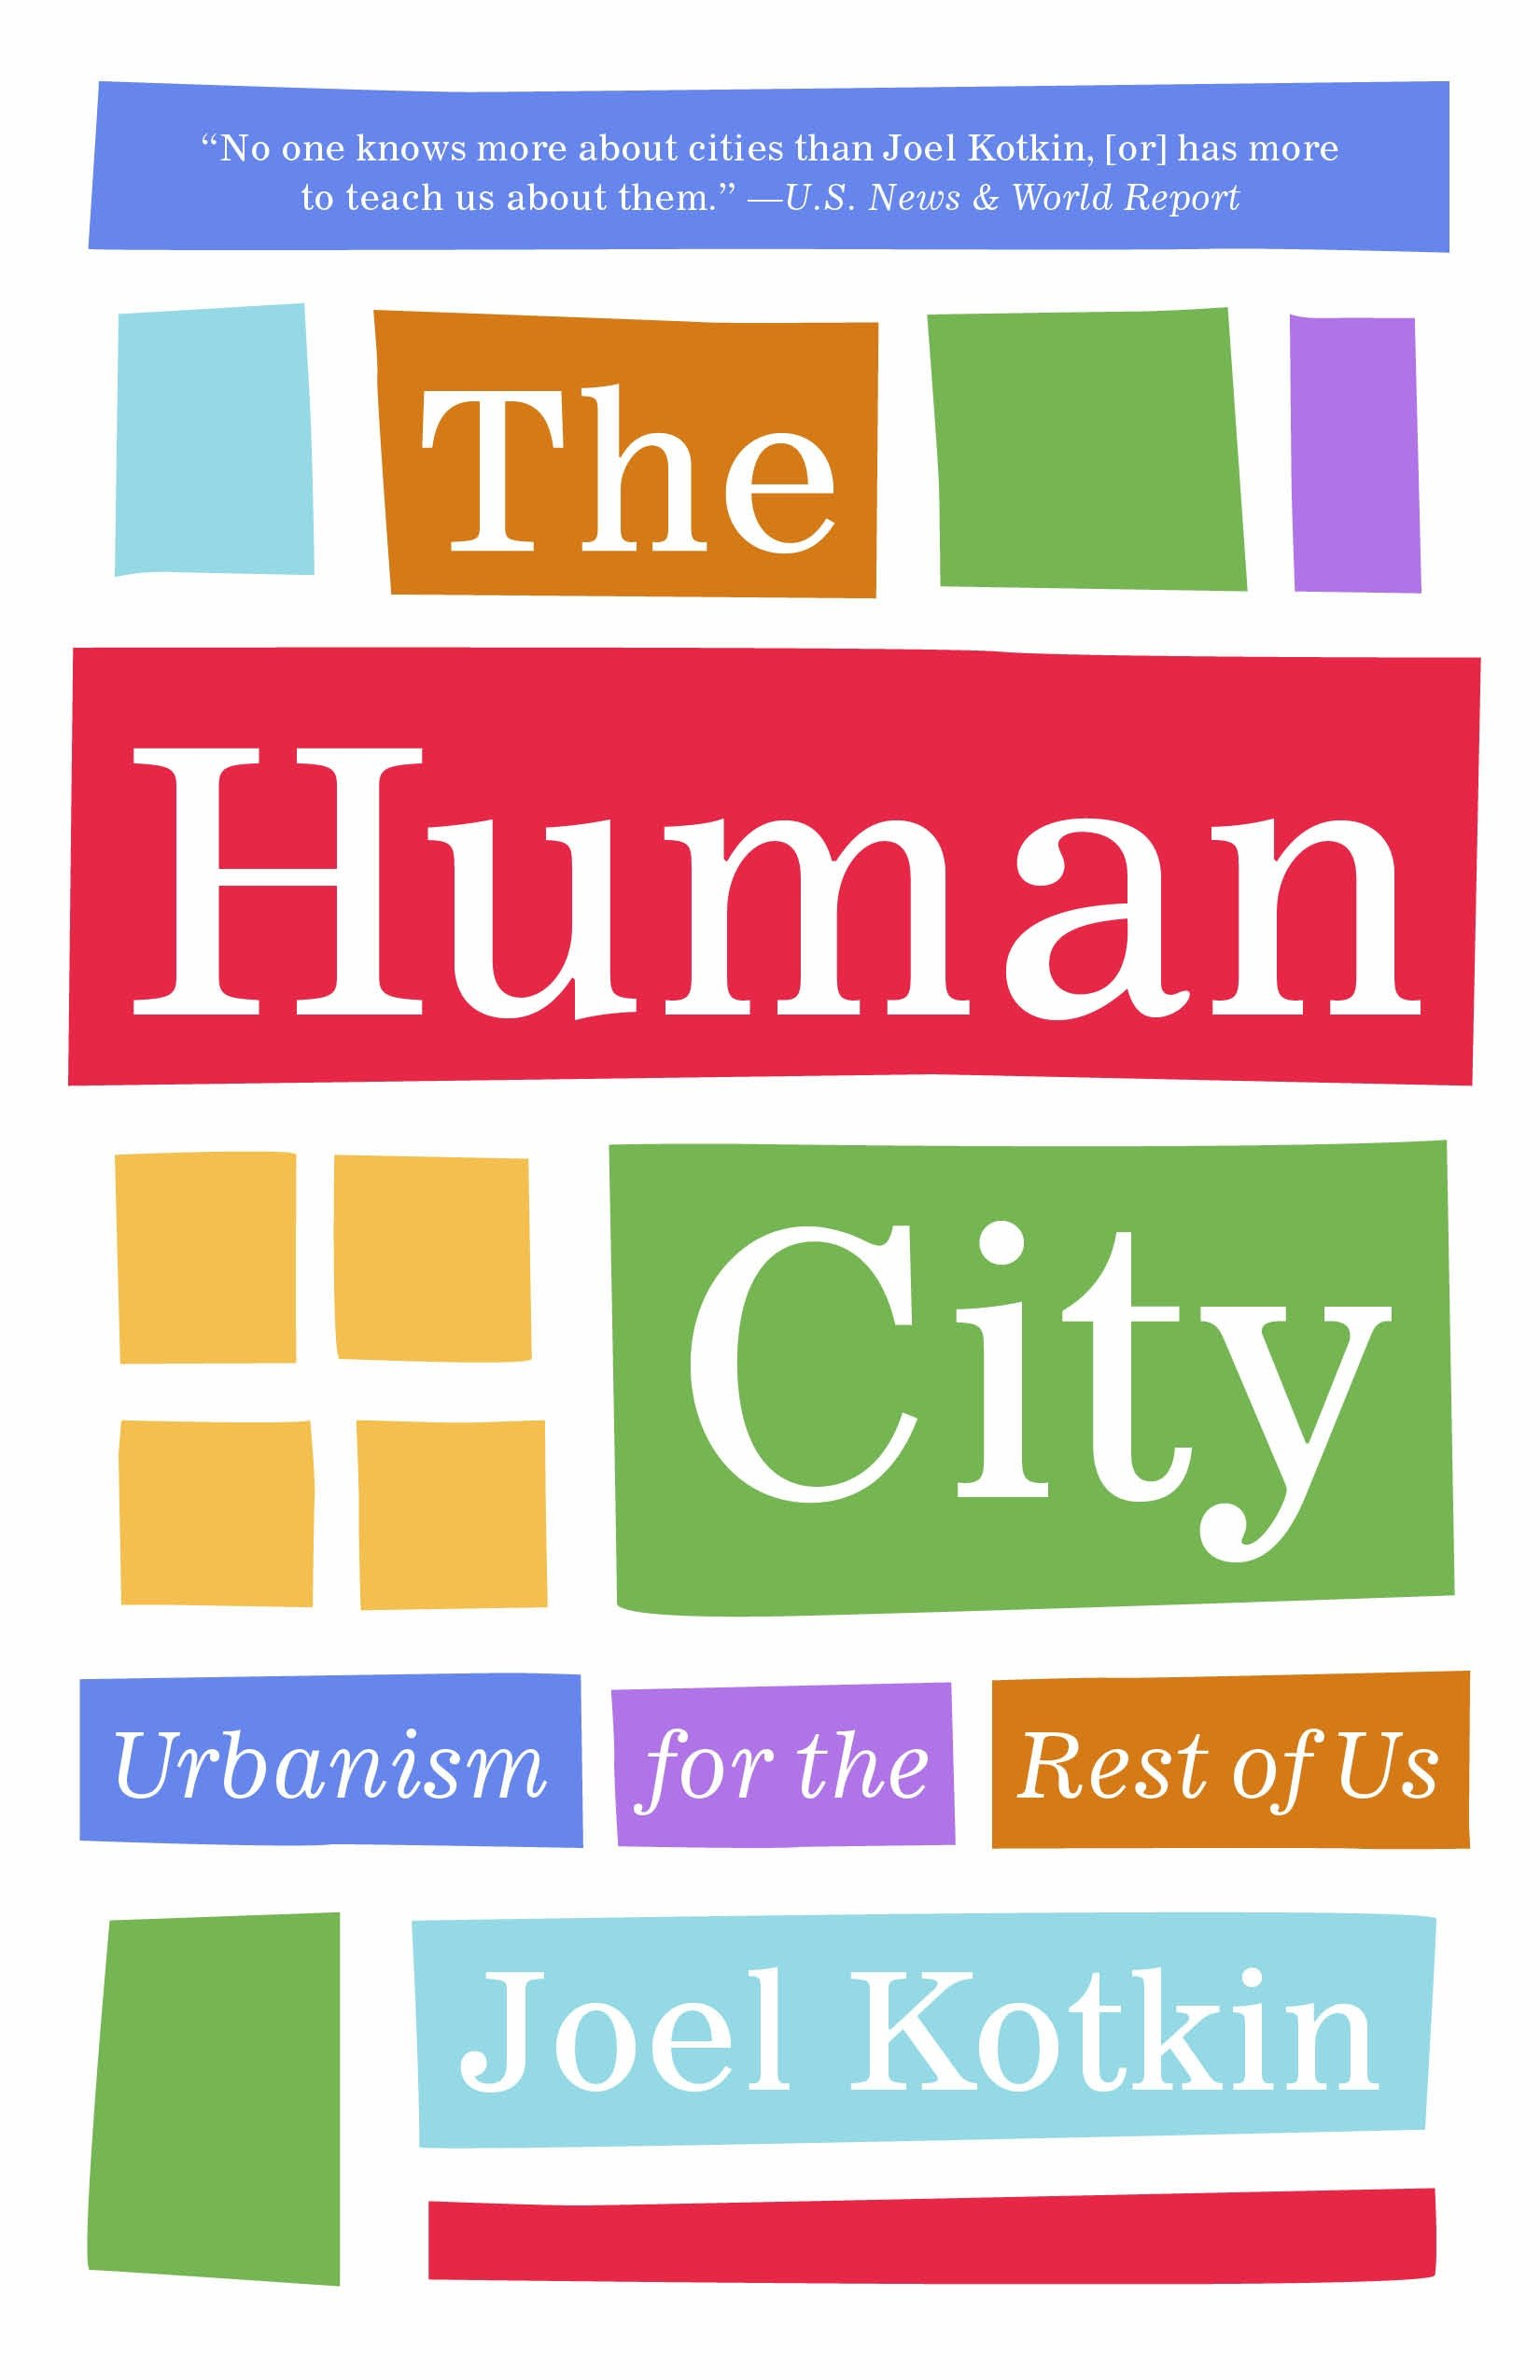 Human City for rest of us